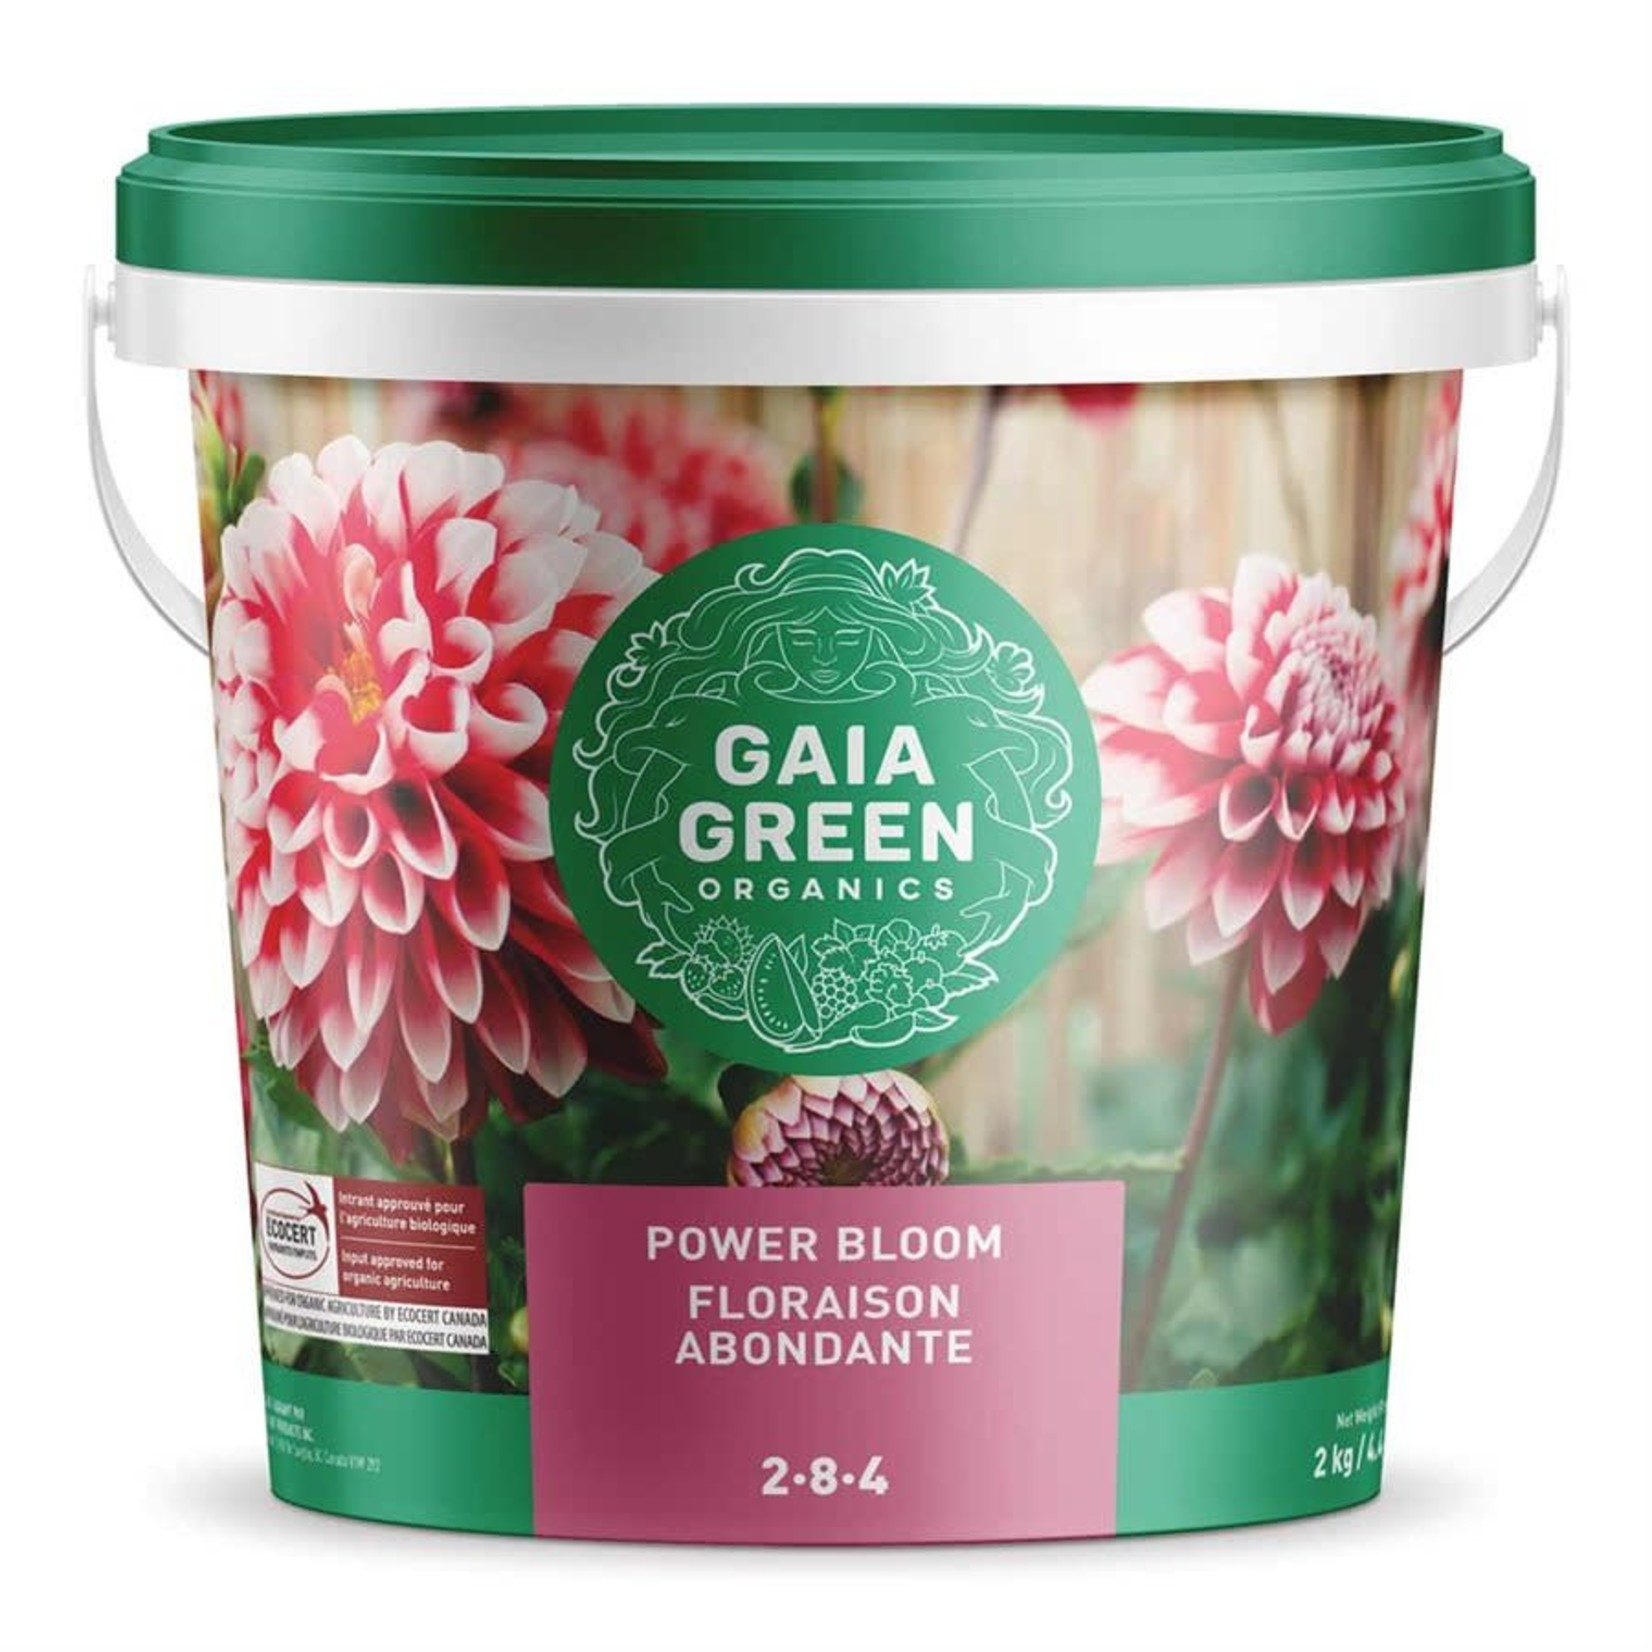 Gaia Green Power Bloom 2-8-4, 2kg